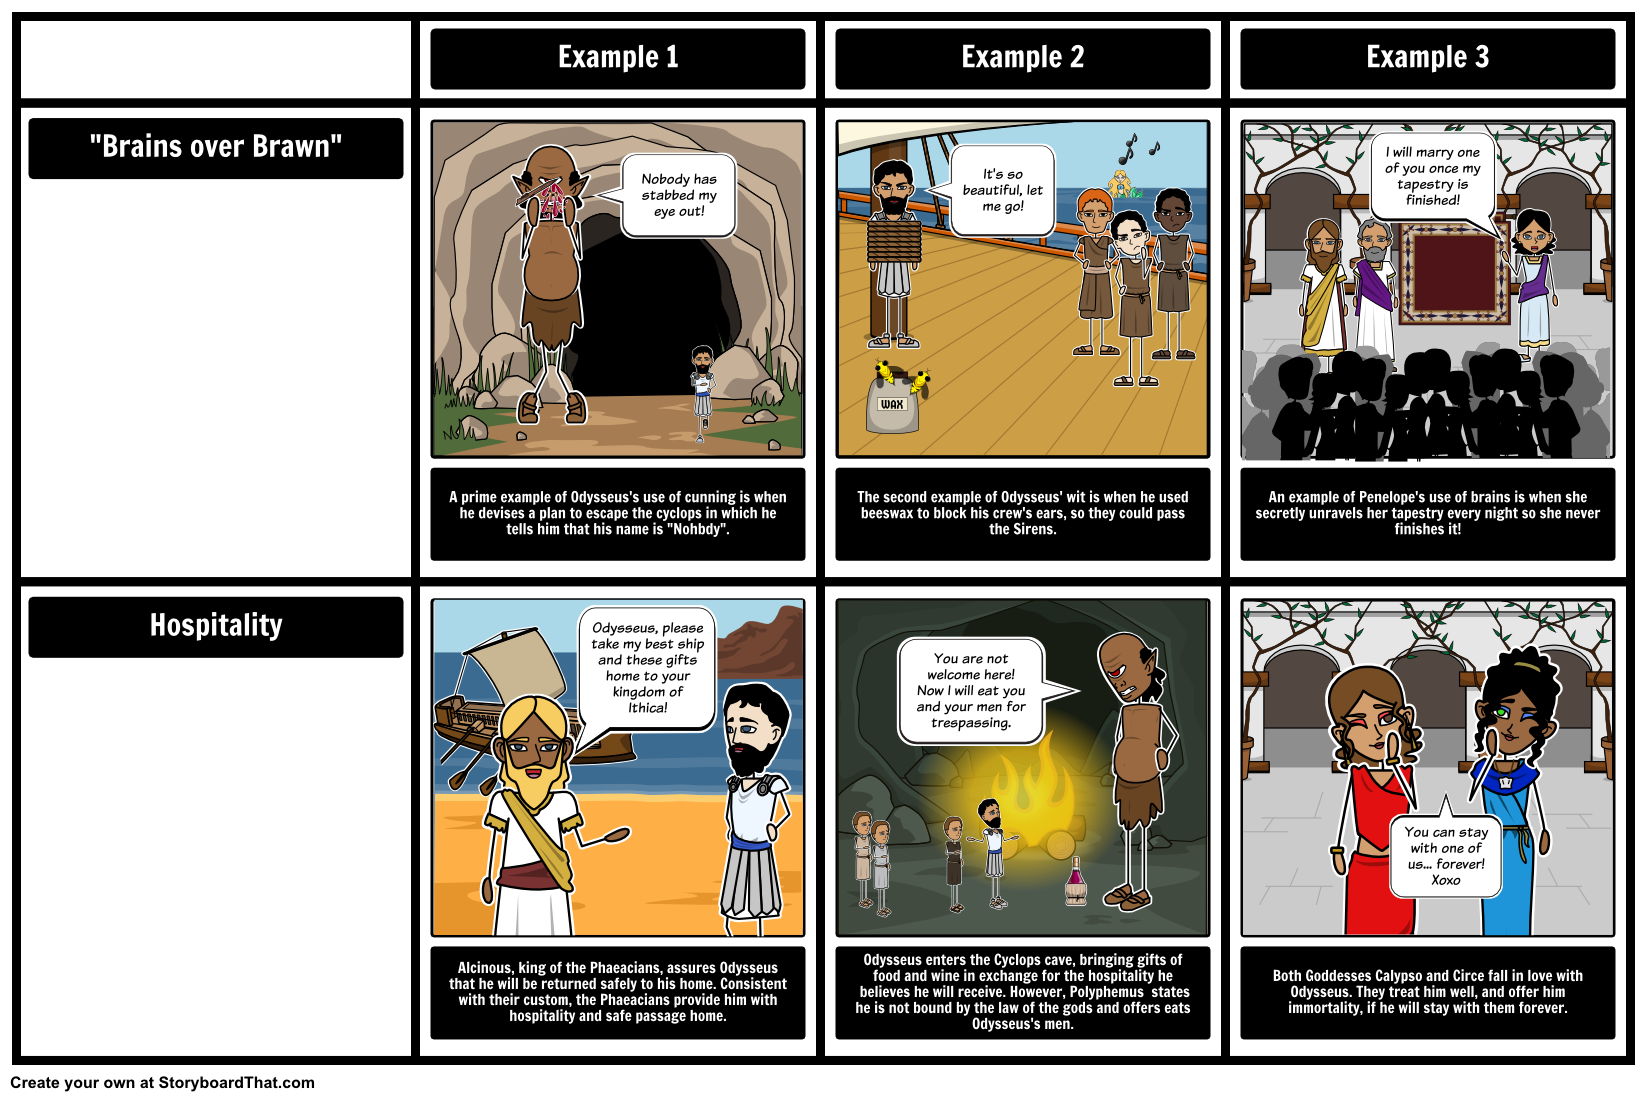 Homer odyssey themes analyze the themes of the odyssey and includes storyboards to define themes symbols motifs in literature with examples meaning symbolism definitions in storyboards buycottarizona